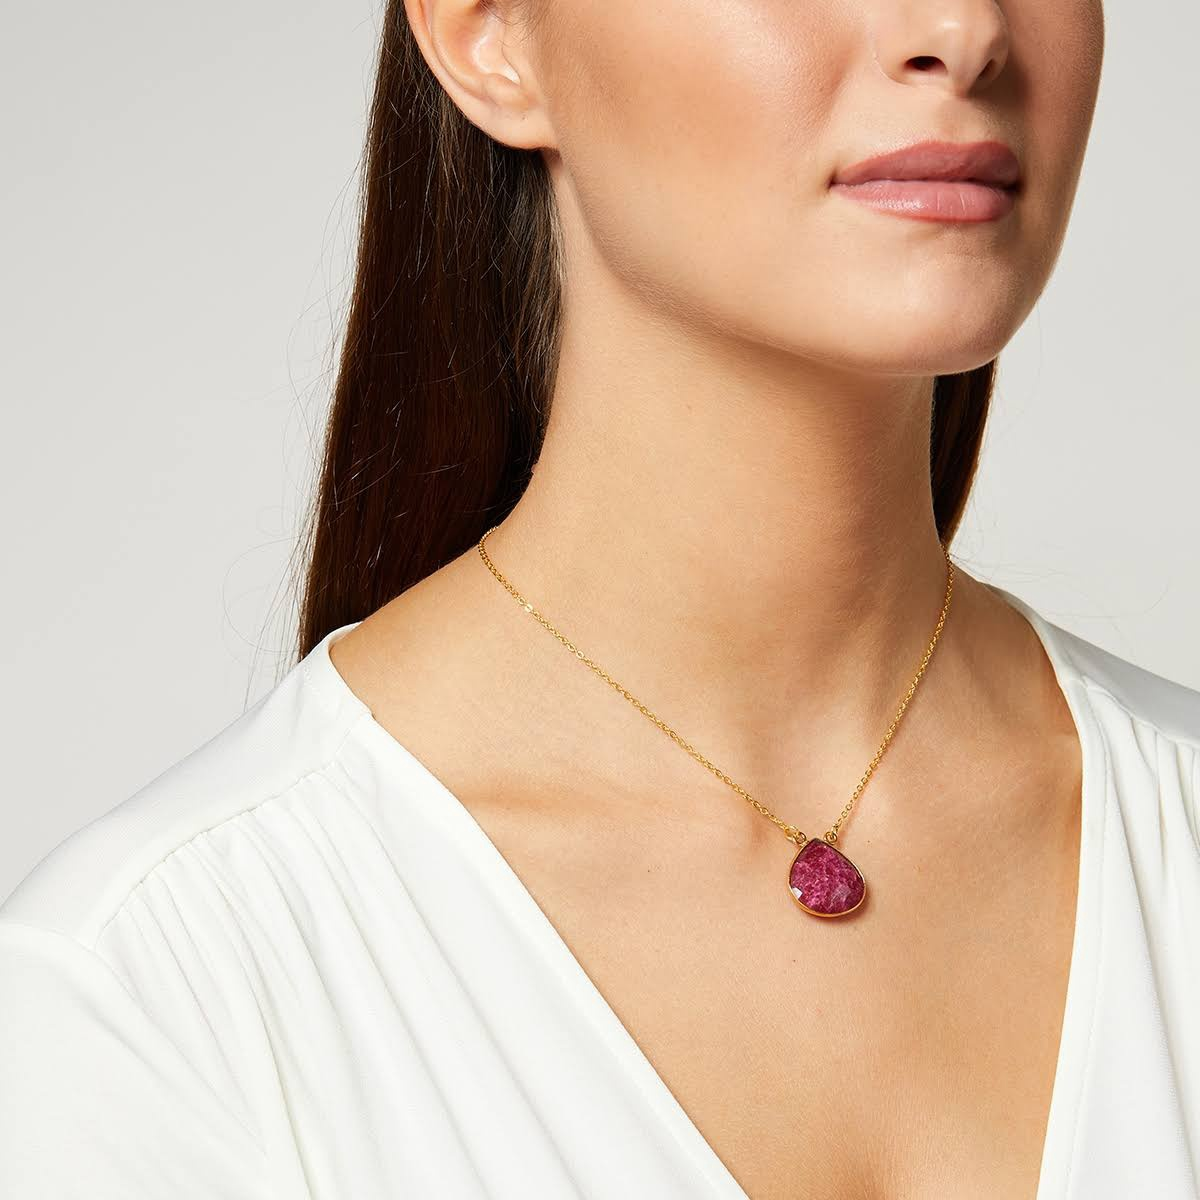 Acapulco Gemstone Pendant Necklace by Ashiana